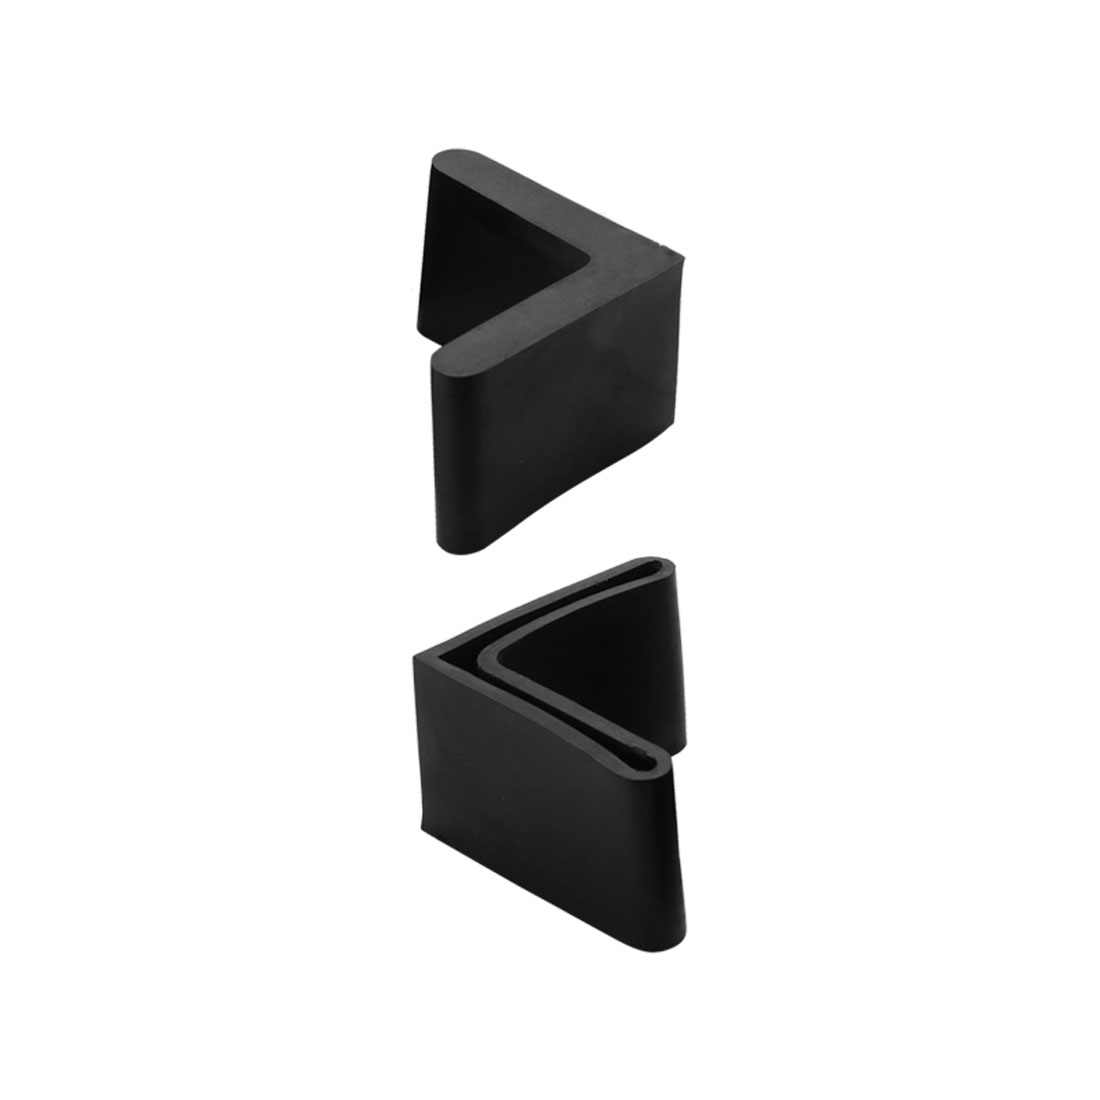 30mm x 30mm L Shaped Angle Iron Leg Foot Rubber Cover Cap Protector Black 2pcs